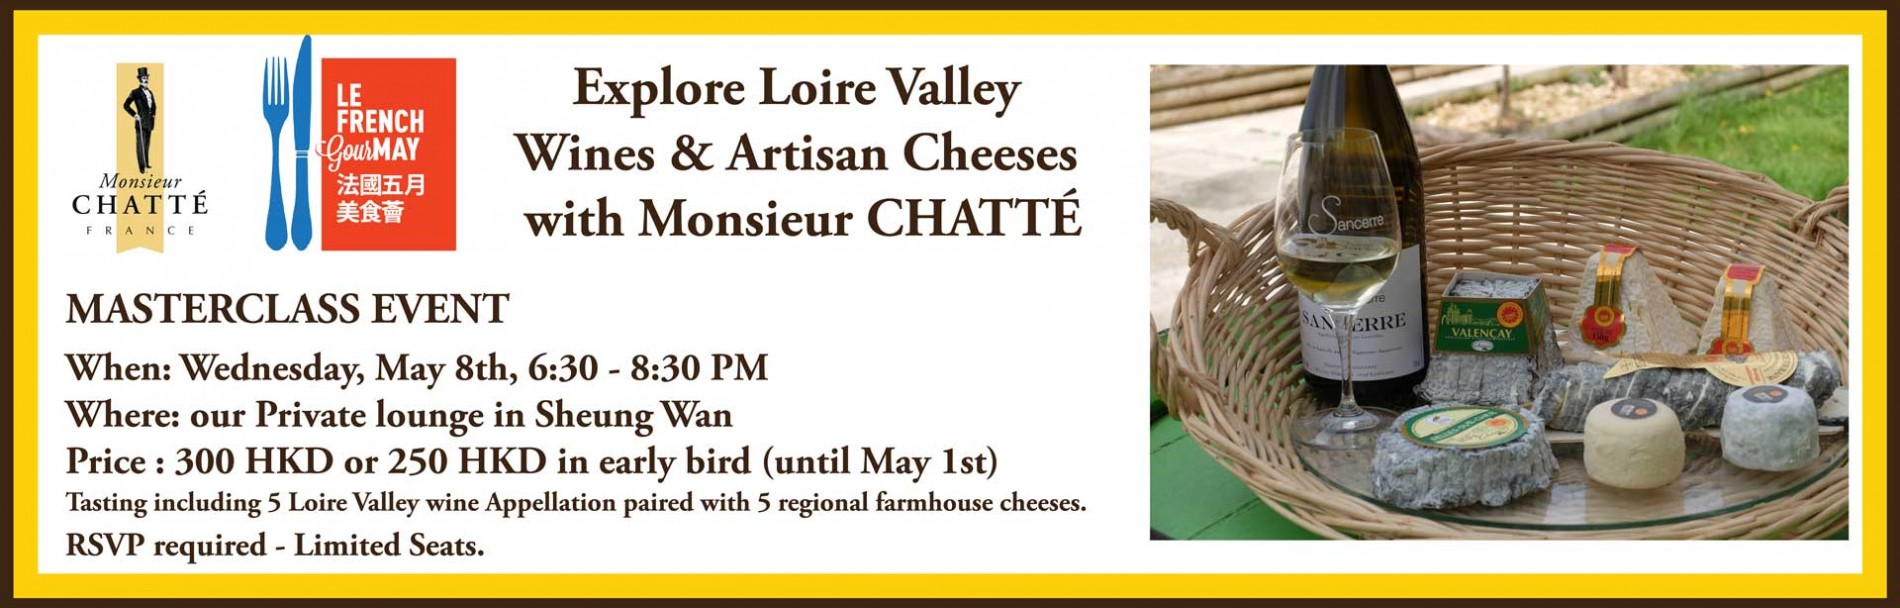 Explore Loire Valley Wines & Artisan Cheeses